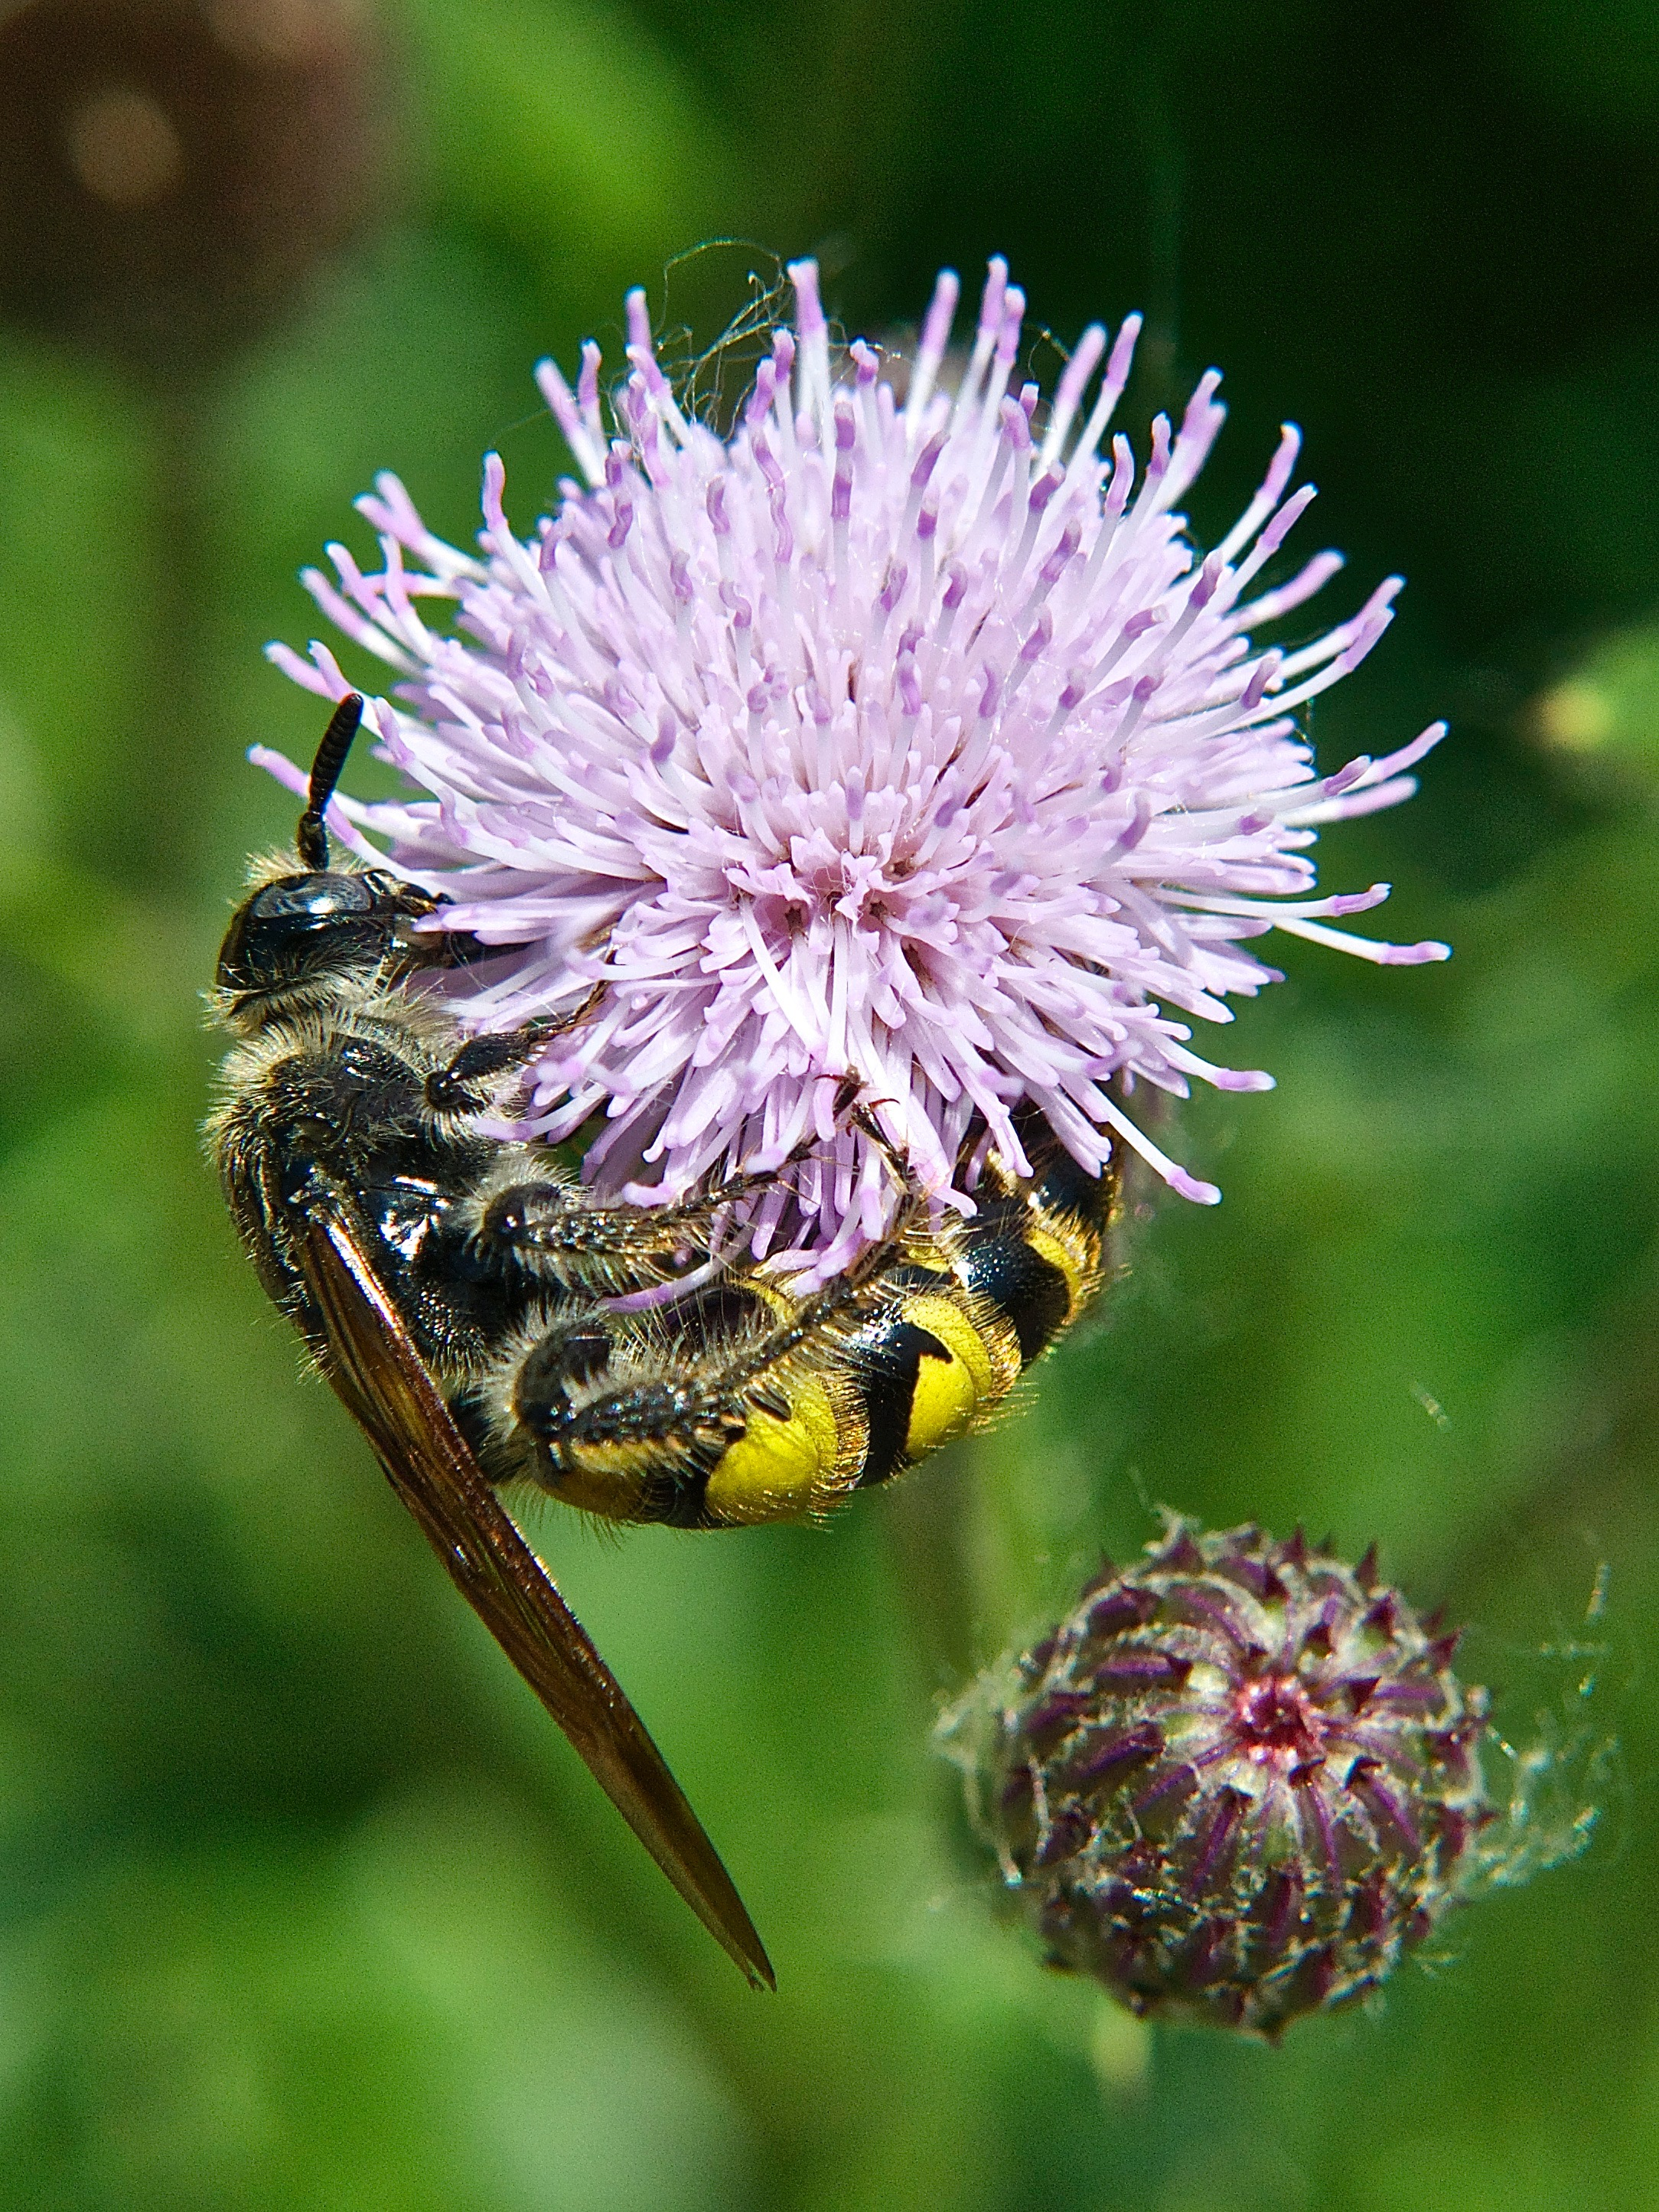 Yellow Jacket Wasp on Canada Thistle